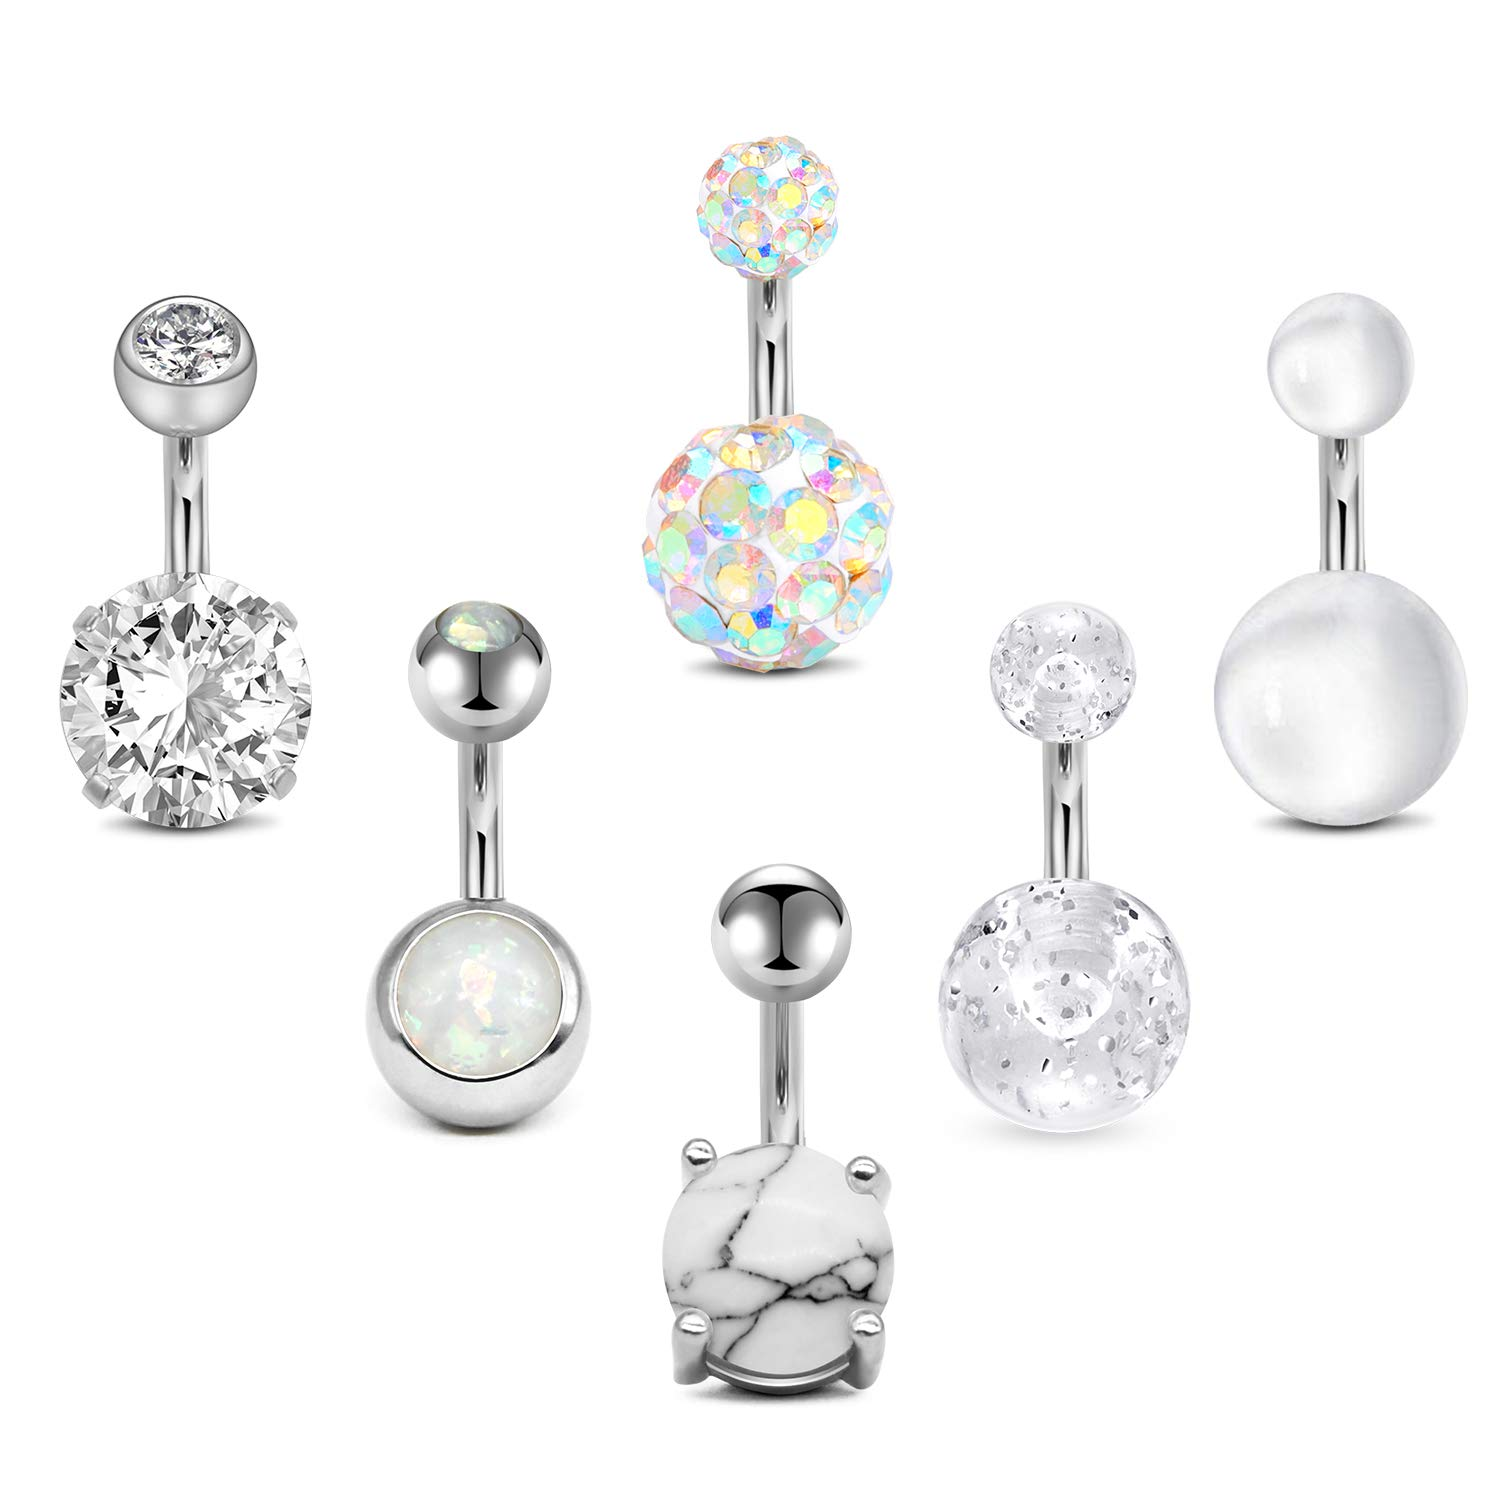 6PCS//Set 14G Stainless Steel Crystal Opal Belly Button Rings Barbell Piercing ML